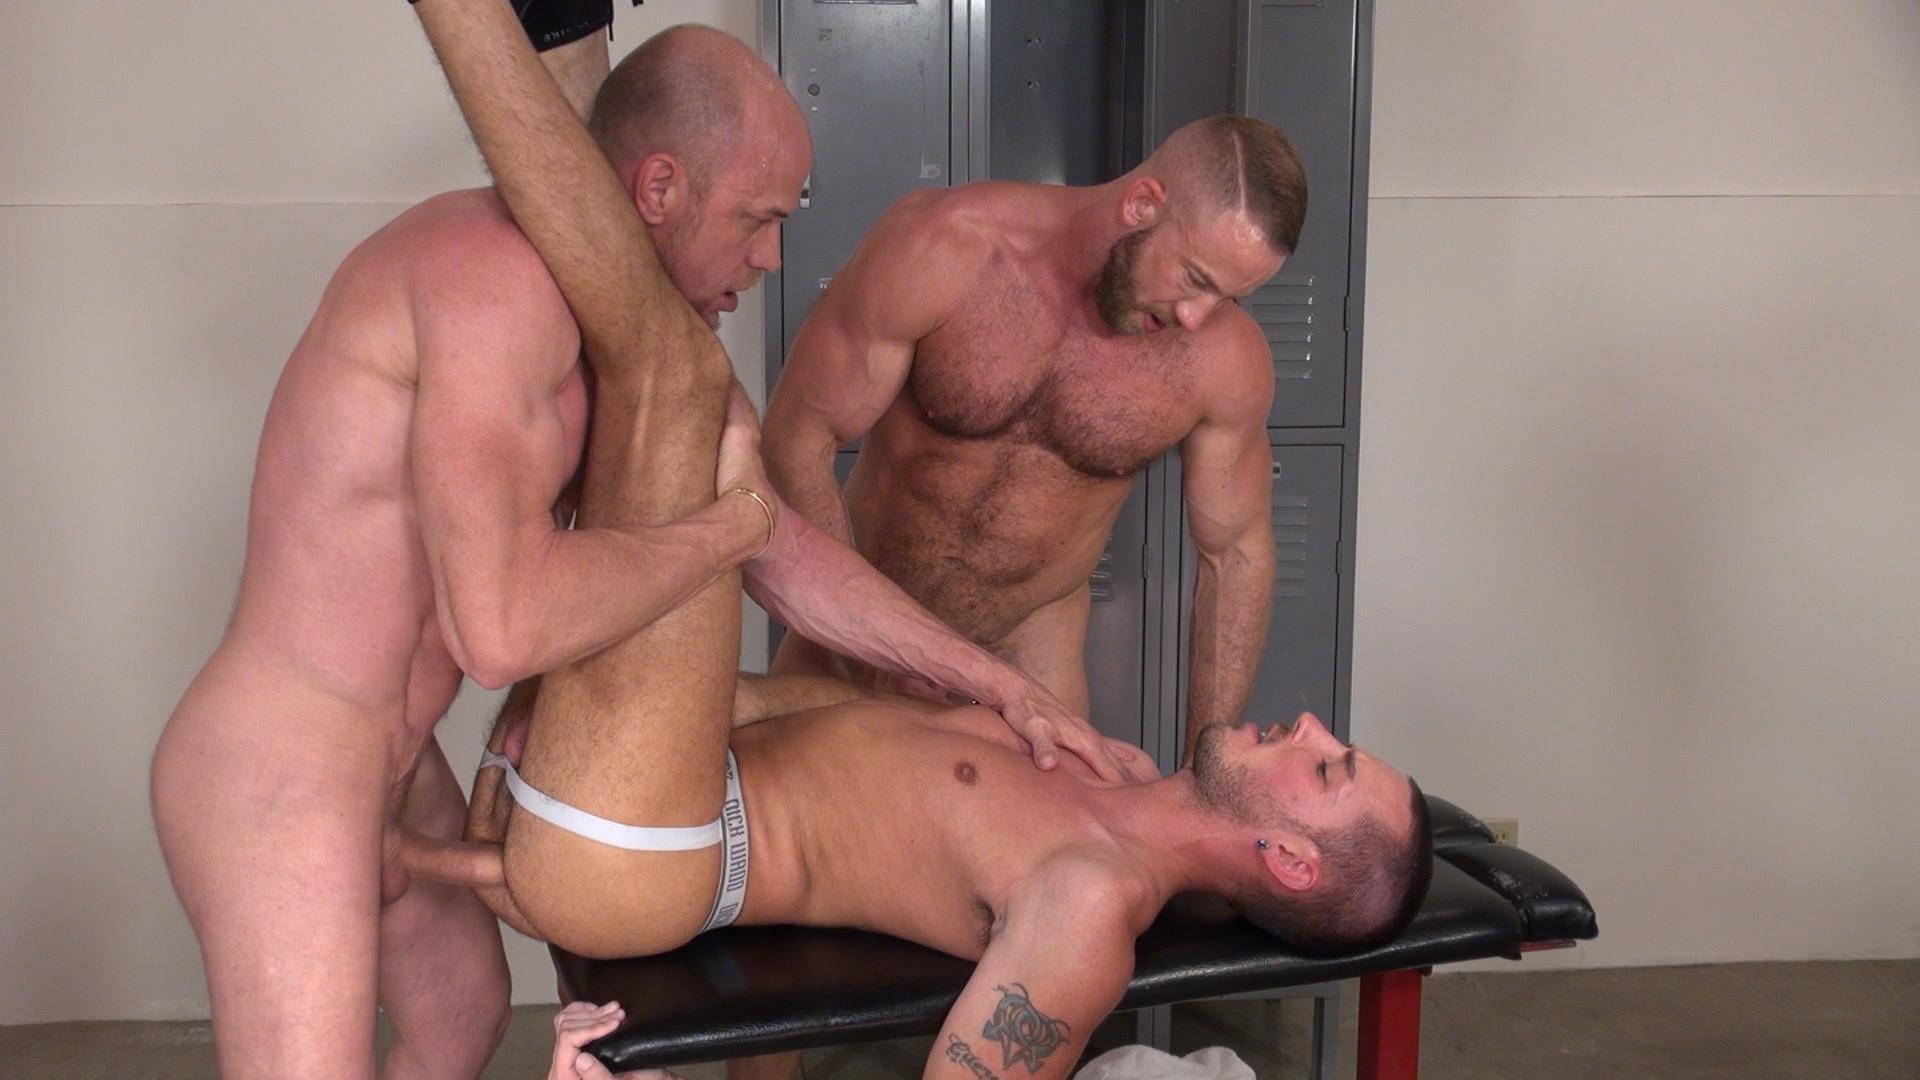 jock gets spitroasted by two kinky cocks